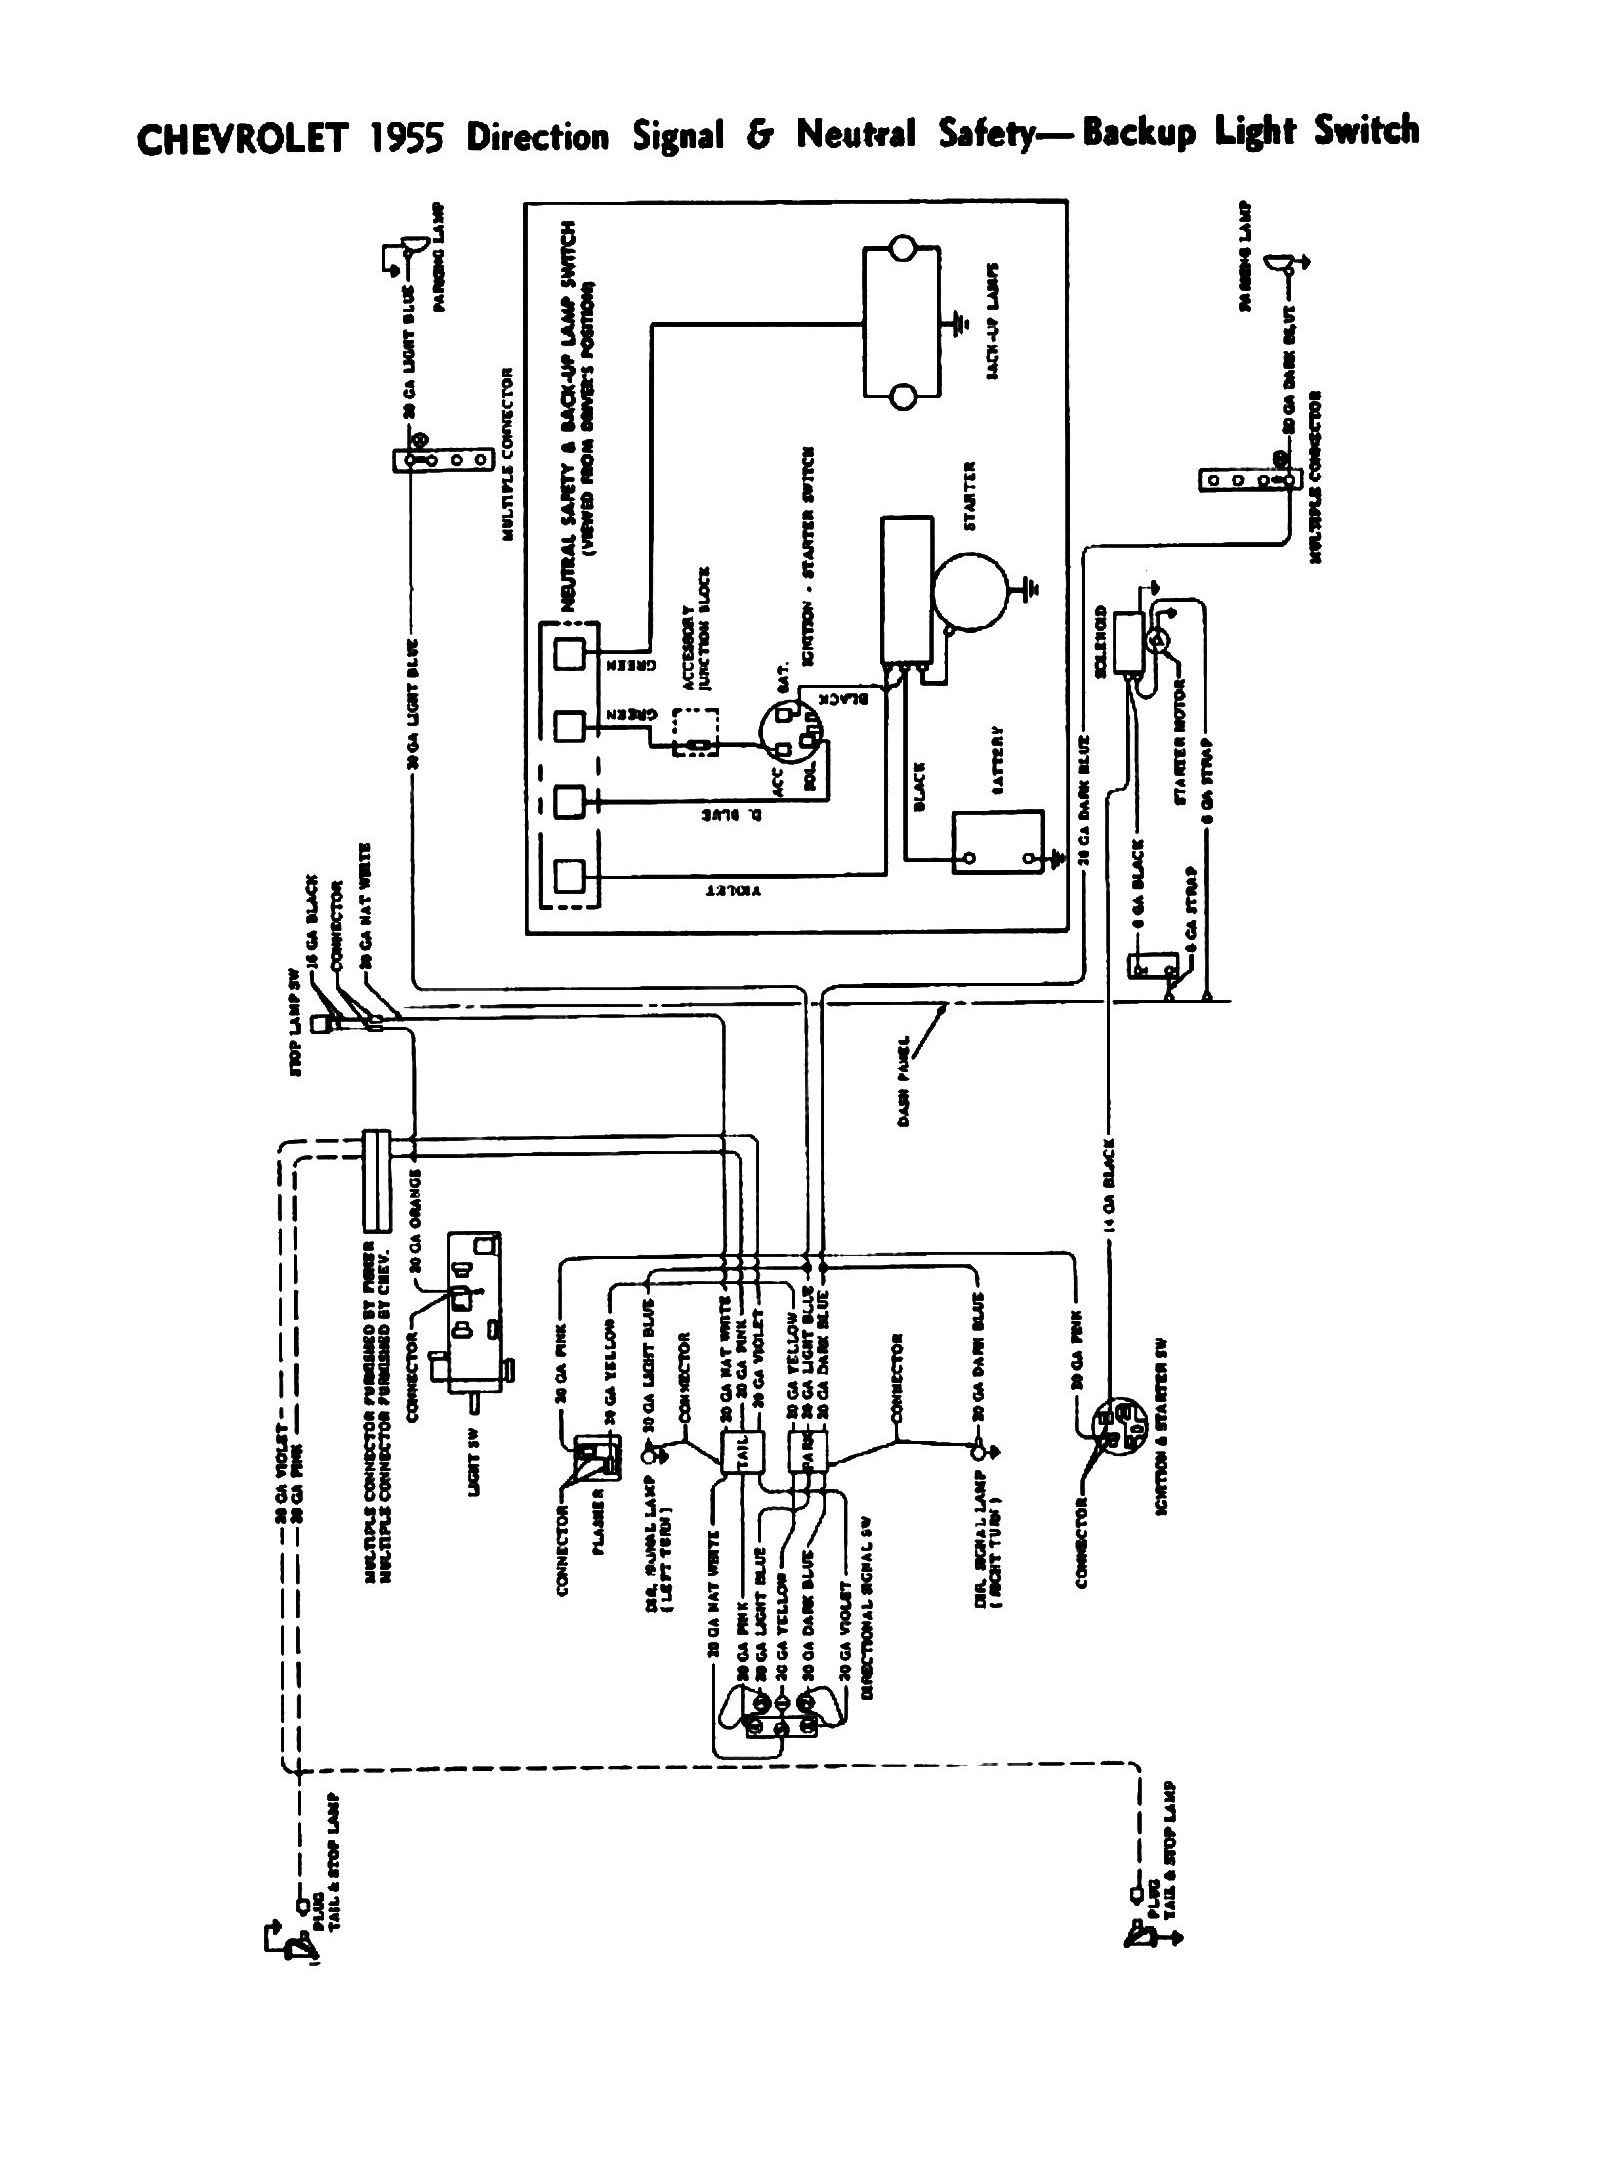 55 chevy truck ignition wiring diagram